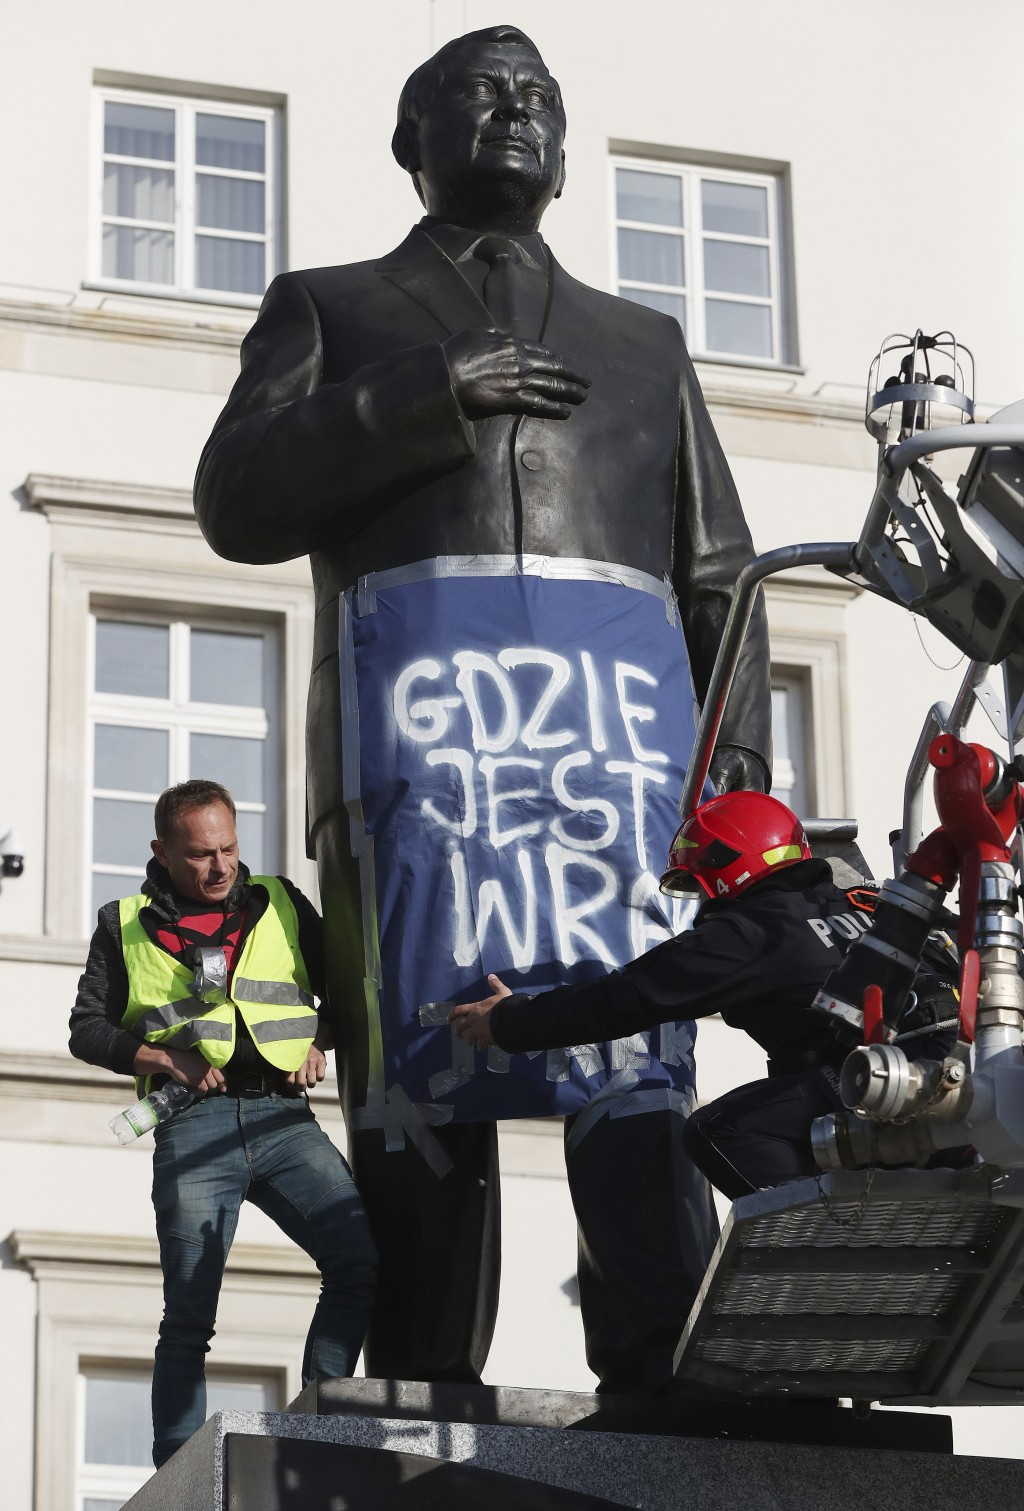 A man stands on a monument to Poland's late president Lech Kaczynski in downtown Warsaw, Poland, Friday, Oct. 11, 2019. He wrapped it in a banner read